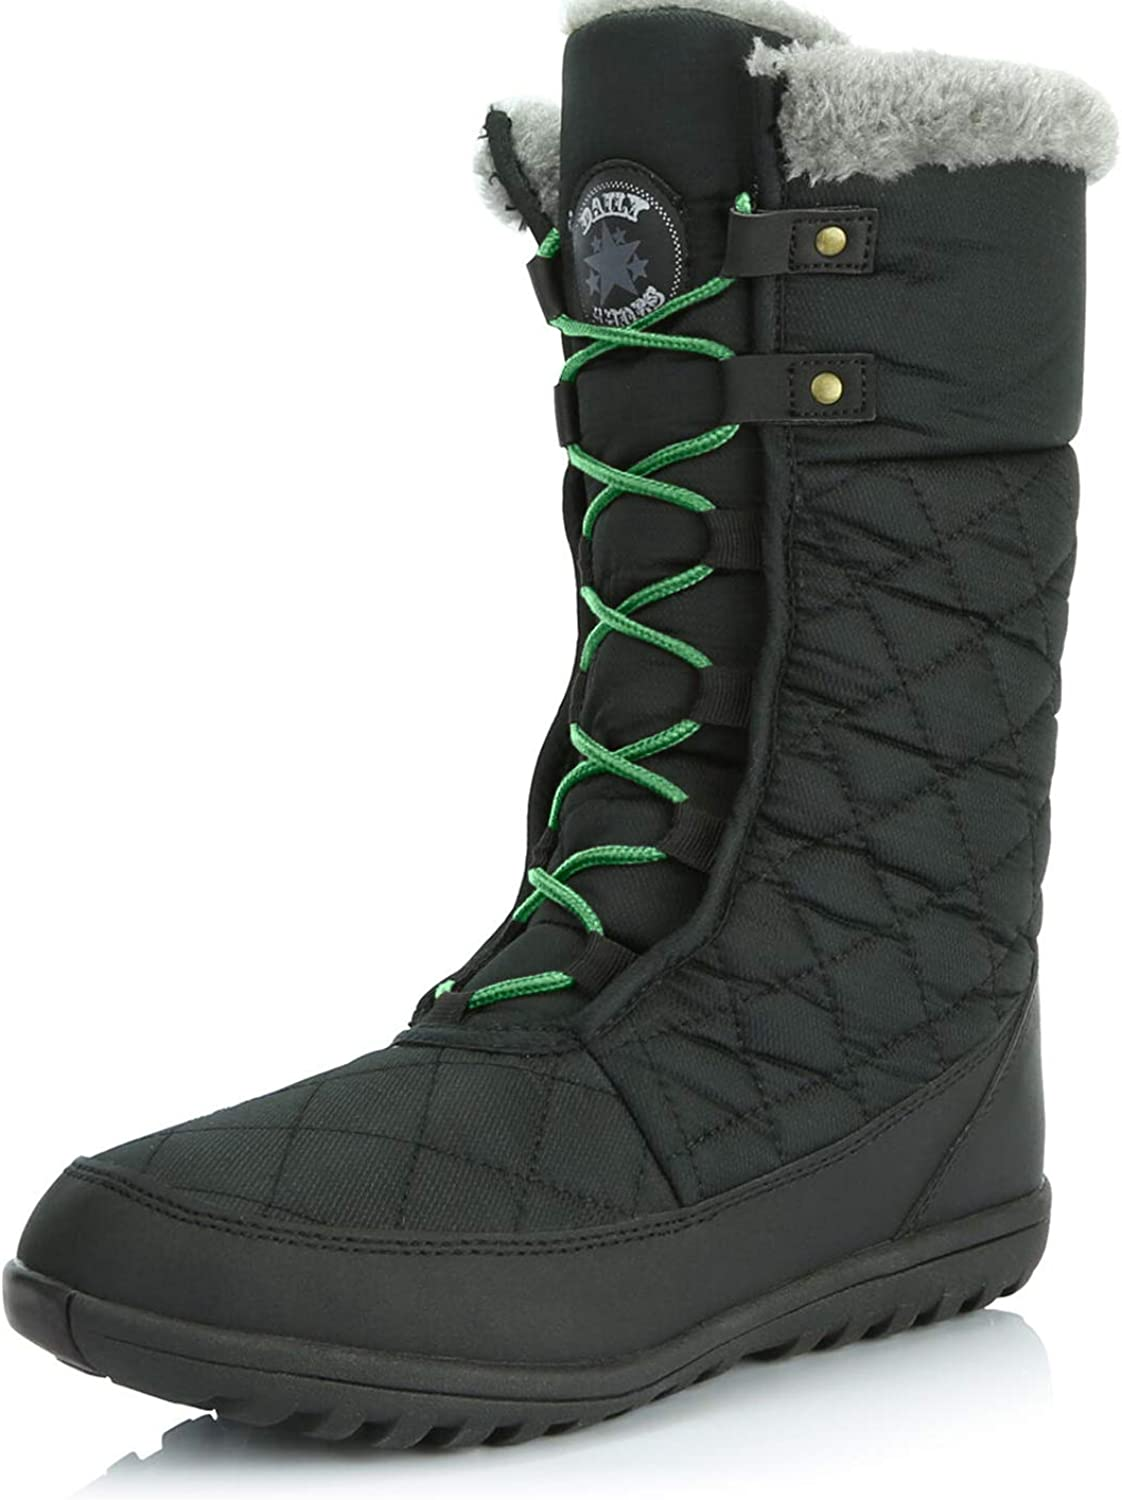 DailyShoes Women's Comfort Round Toe Mid Calf Flat Ankle High Eskimo Winter Fur Snow Boots, Green